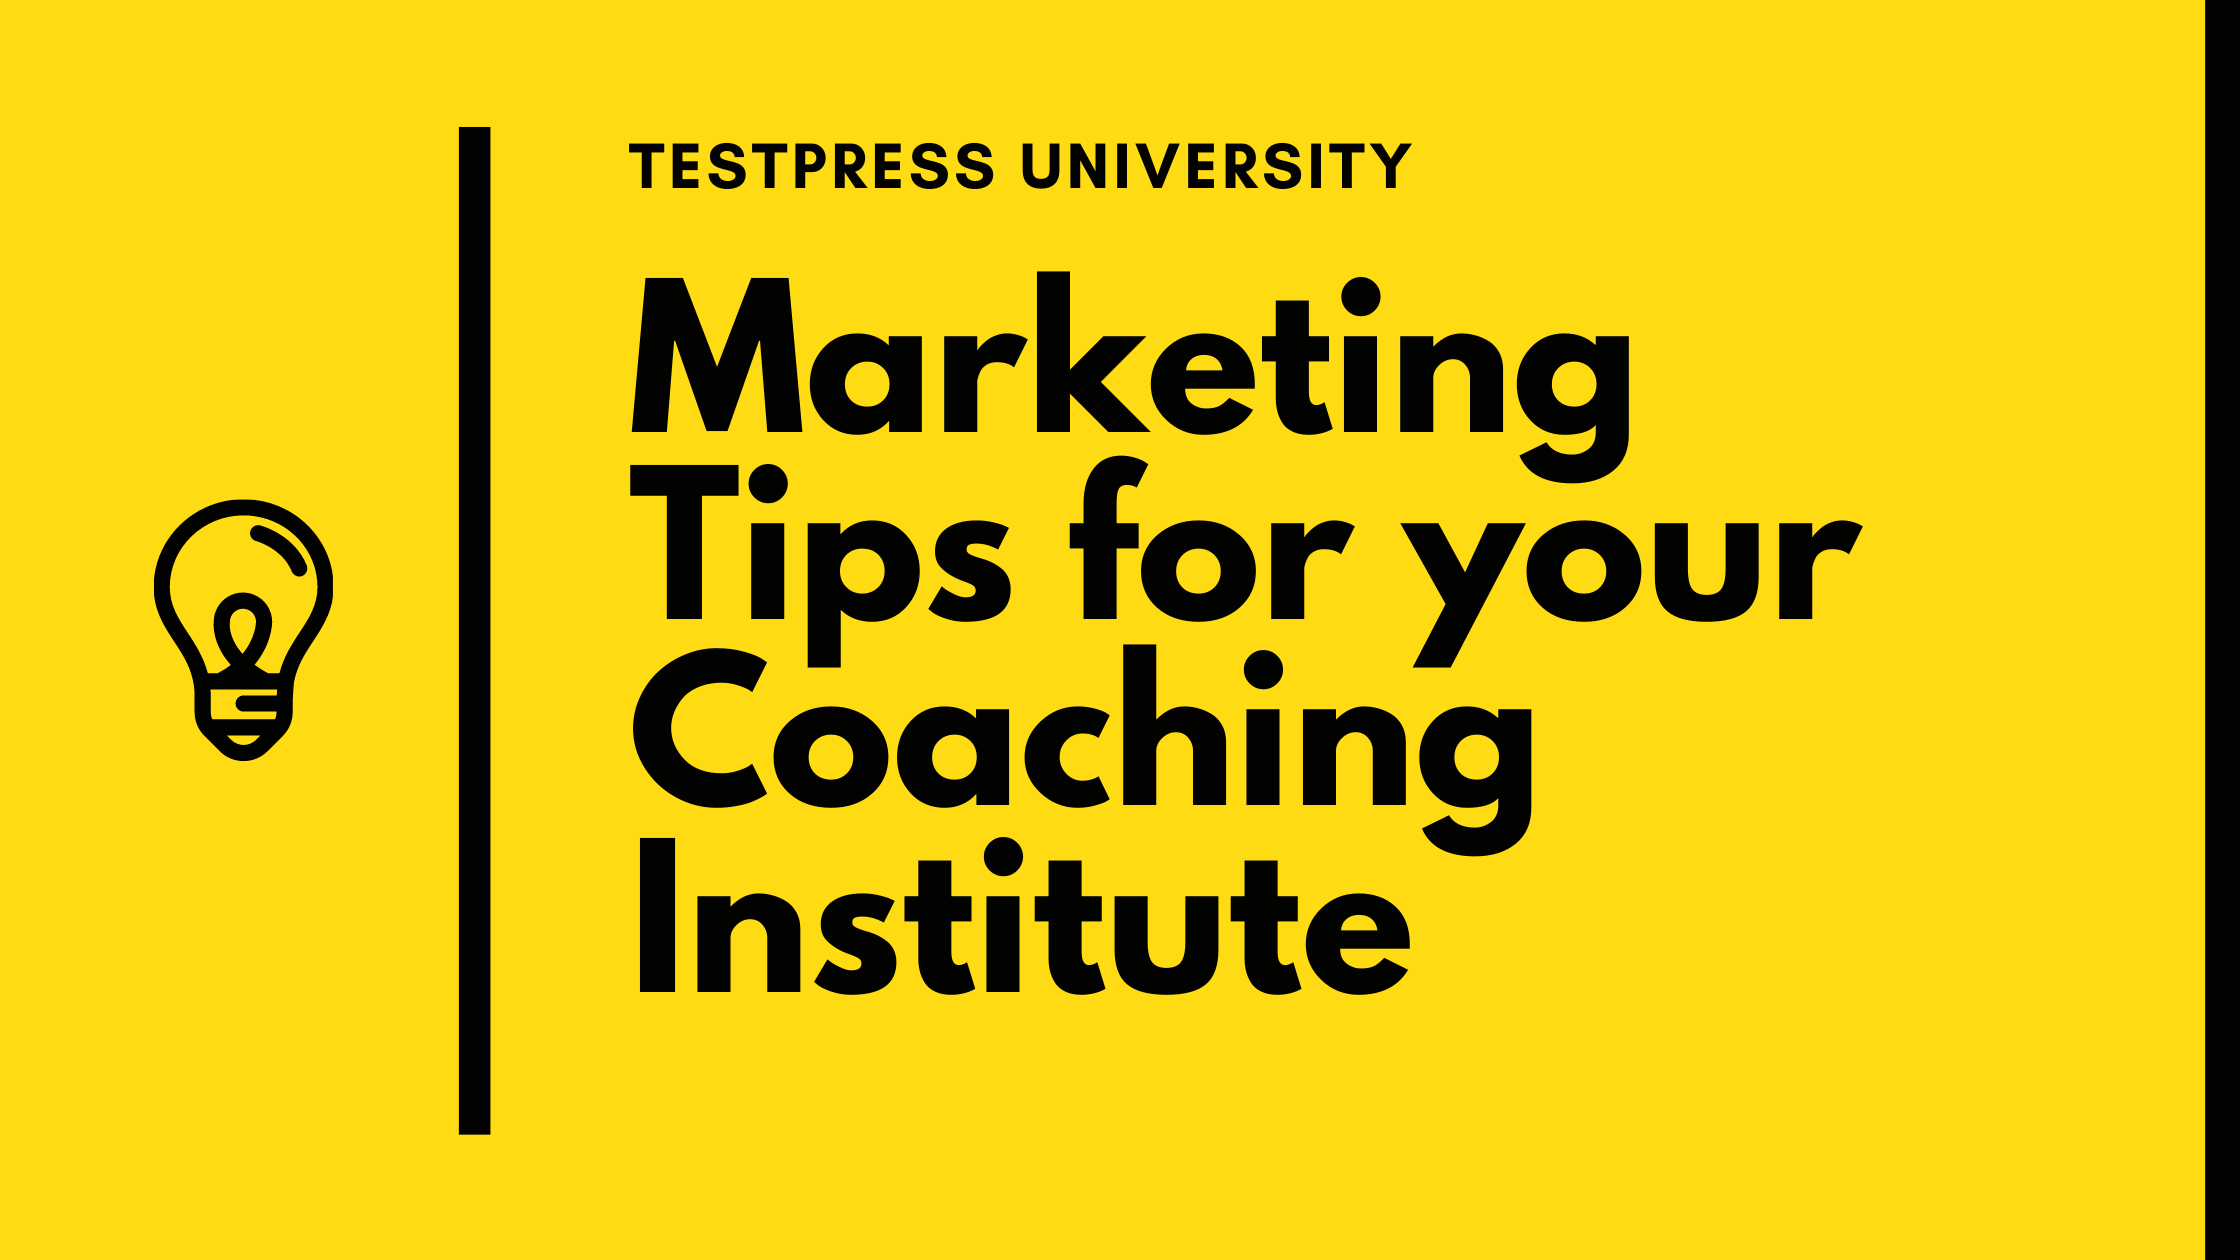 9 ways to market your coaching institute using Facebook